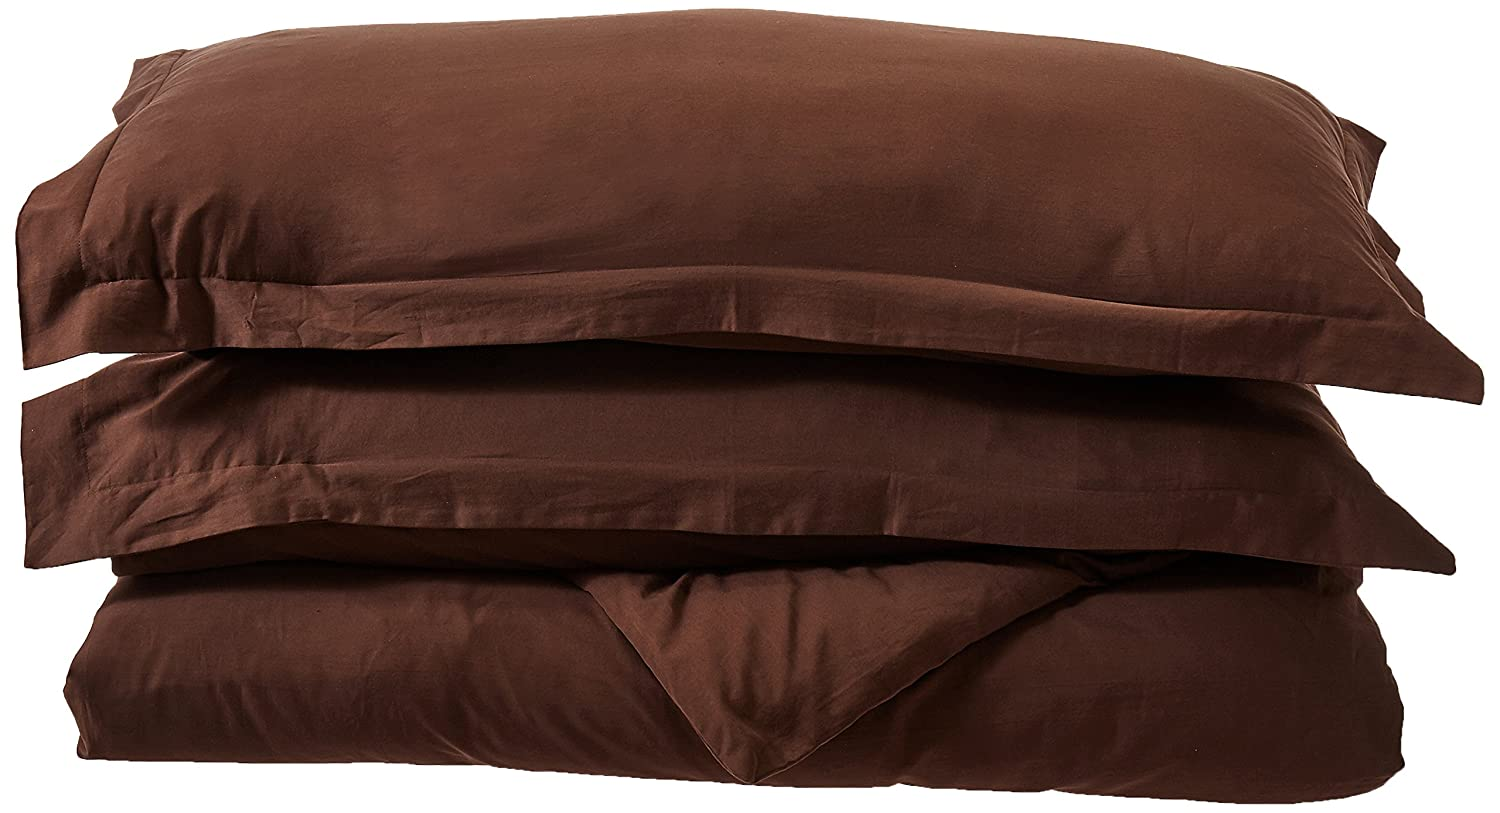 Maghso KD400C 400 Thread Count King Size 3PC Duvet Cover Set 100/% Egyptian Cotton with Button Enclosure Brown